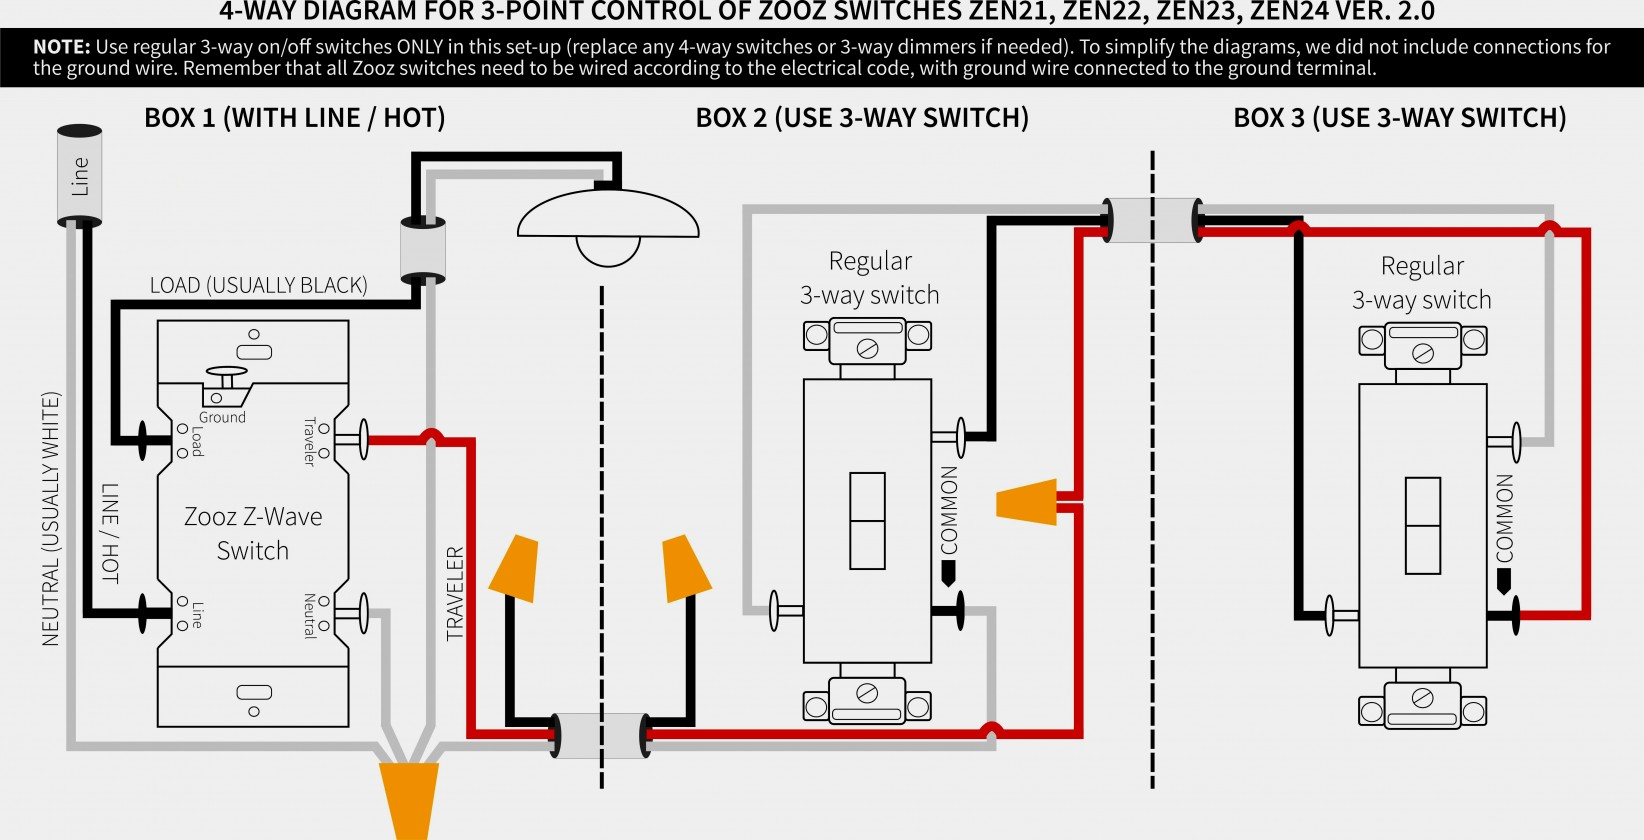 3 Way Switch Wiring Diagram Variations | Wiring Diagram - Leviton 3 Way Switch Wiring Diagram